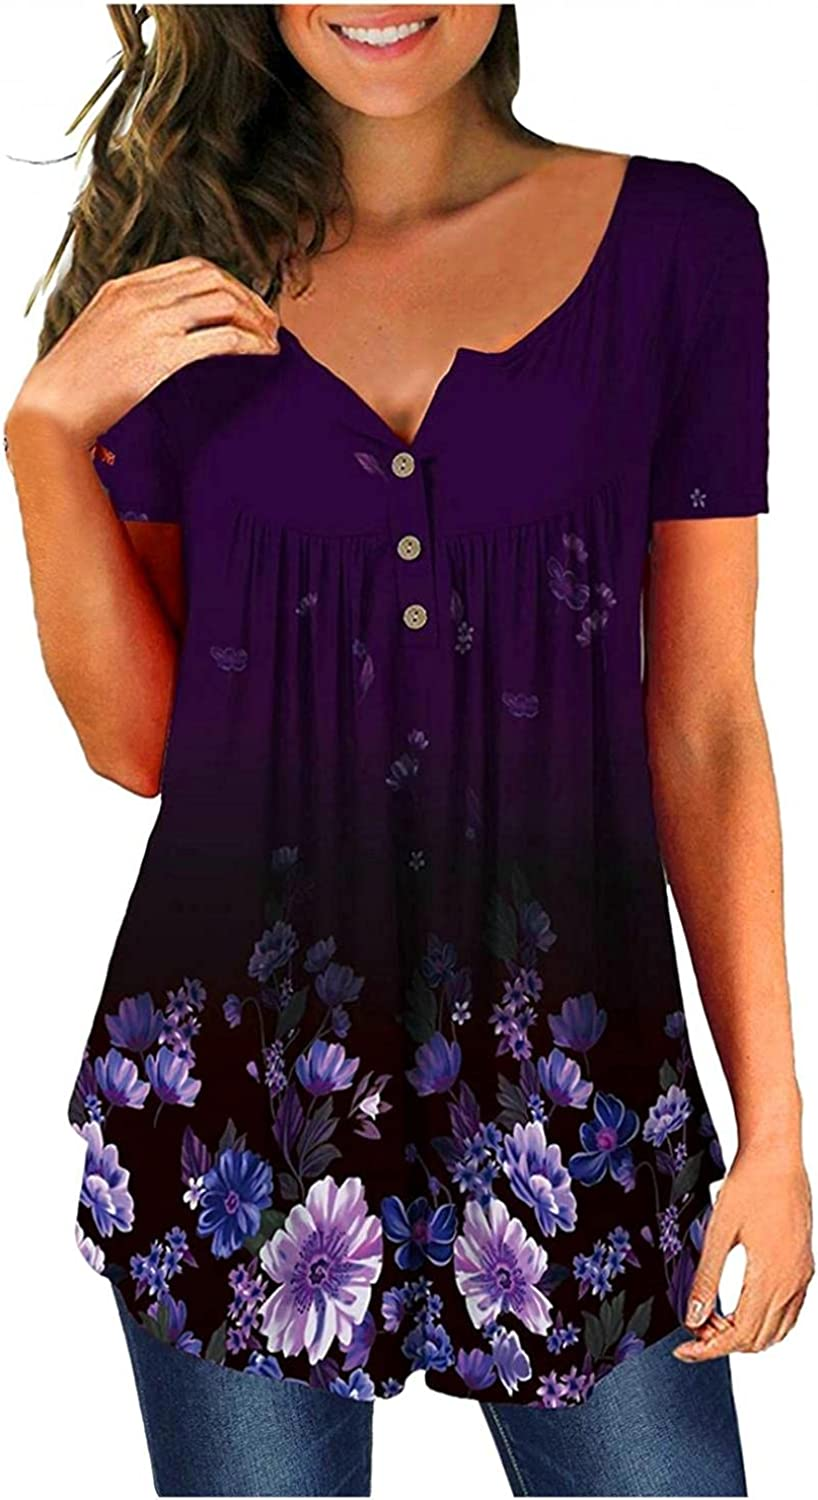 xoxing Womens Tops Casual V Neck Floral Printed Tunic Tops Summer Plus Size Buttons Short Sleeve Loose T-Shirts Blouse